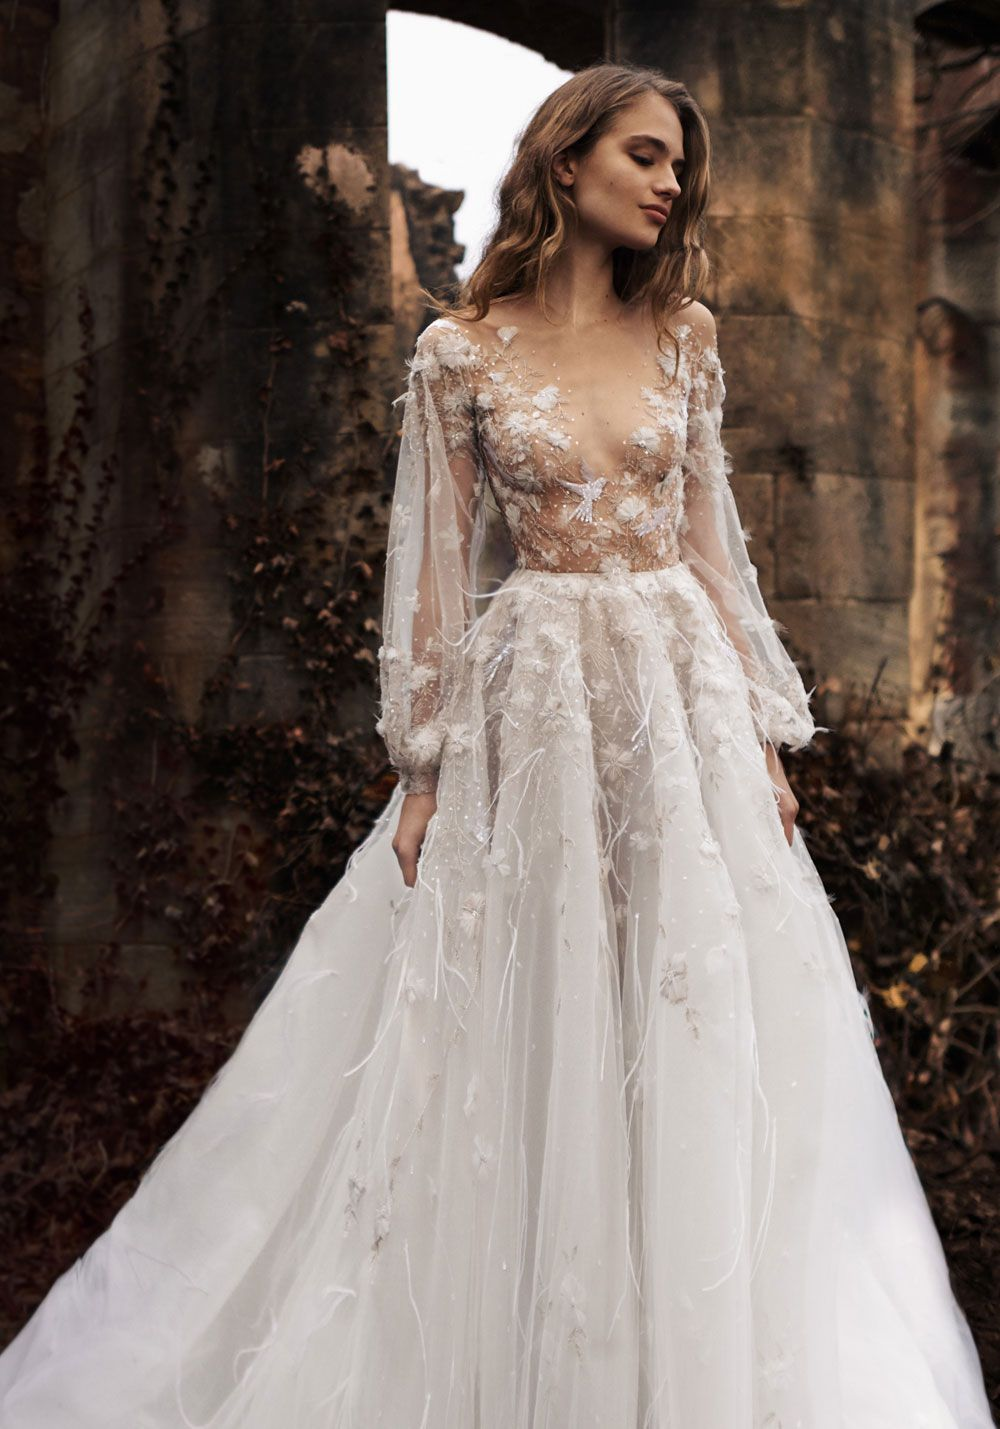 Dress Design By Paolo Sebastian Wedding Dresses Stunning Bridal Look